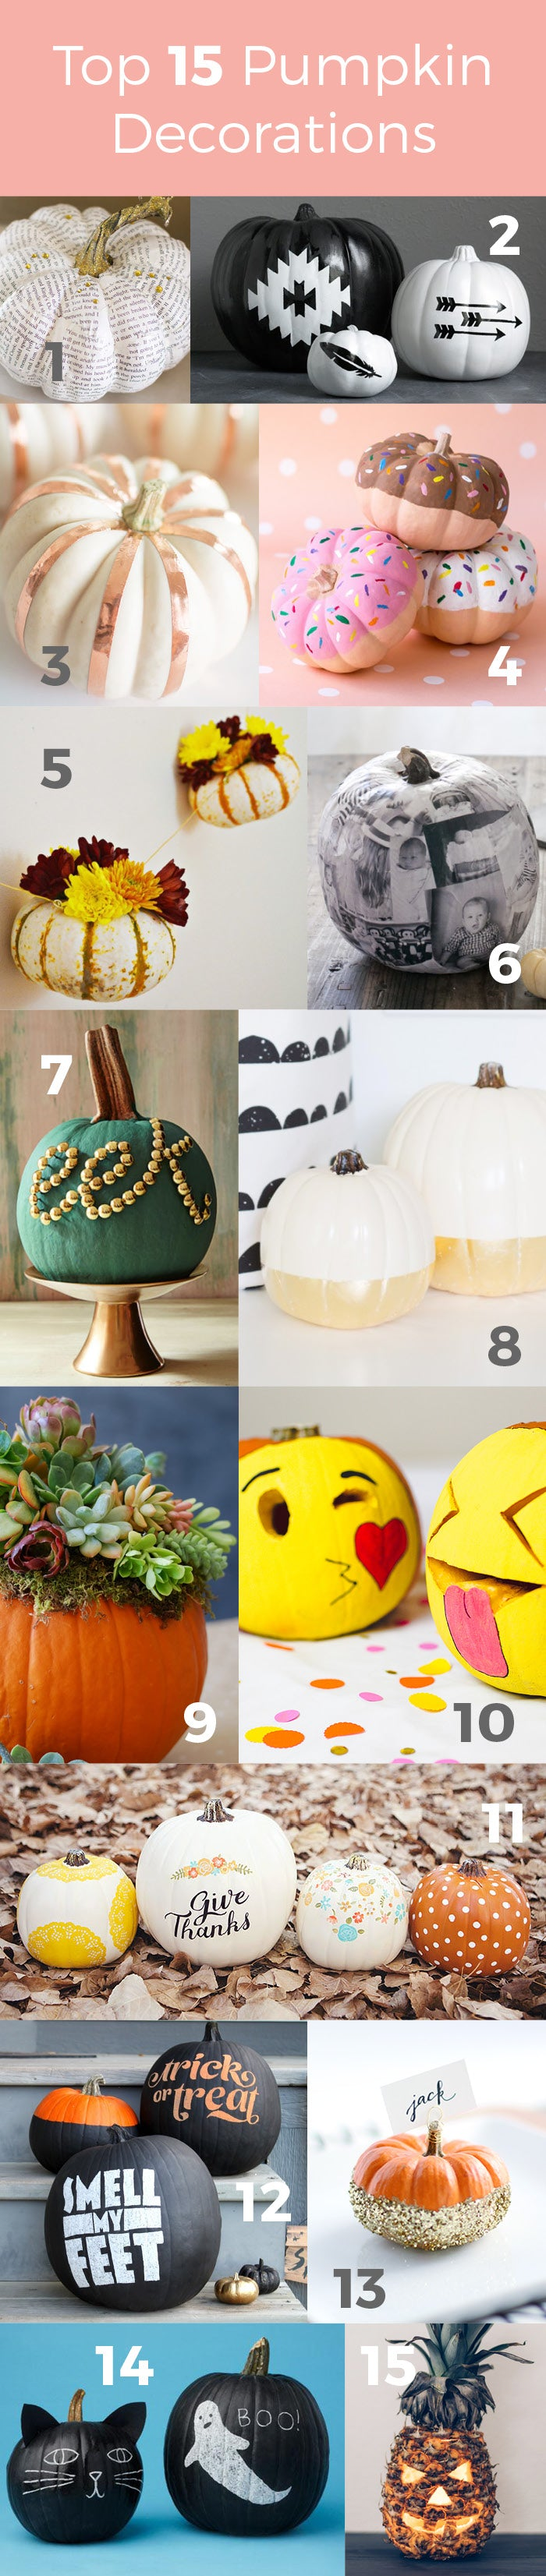 Top 15 Pumpkin Decorations Round-up by Hello Luvvy